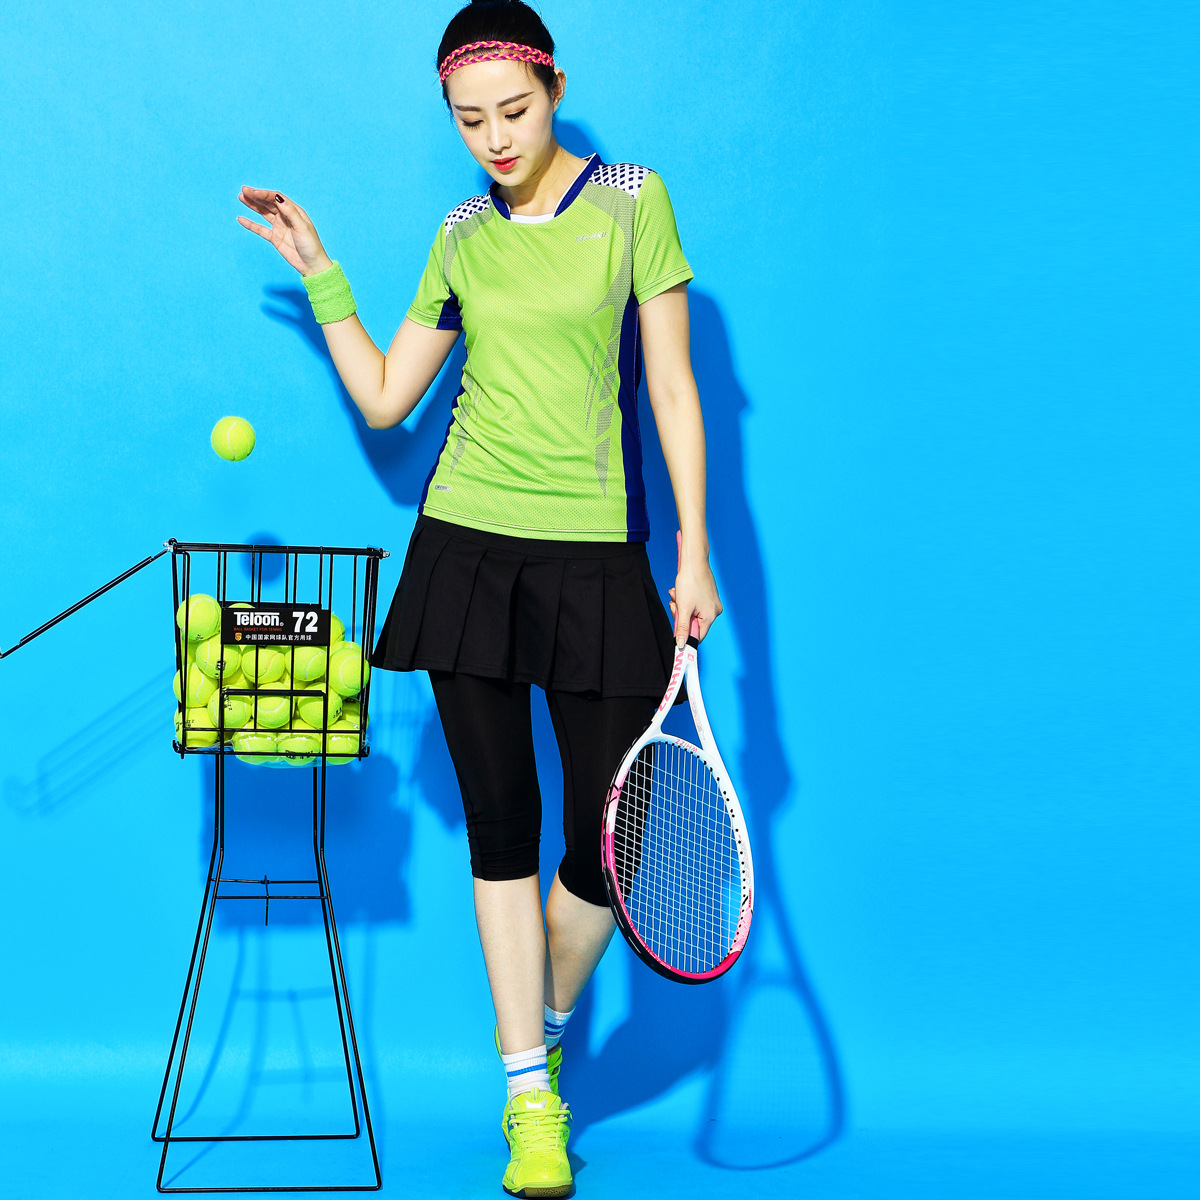 Yoga Table Tennis Clothing Plus Size Badminton Wear Skirt Pants Women's Sports Skirt Quick-drying Calf-Length Pants